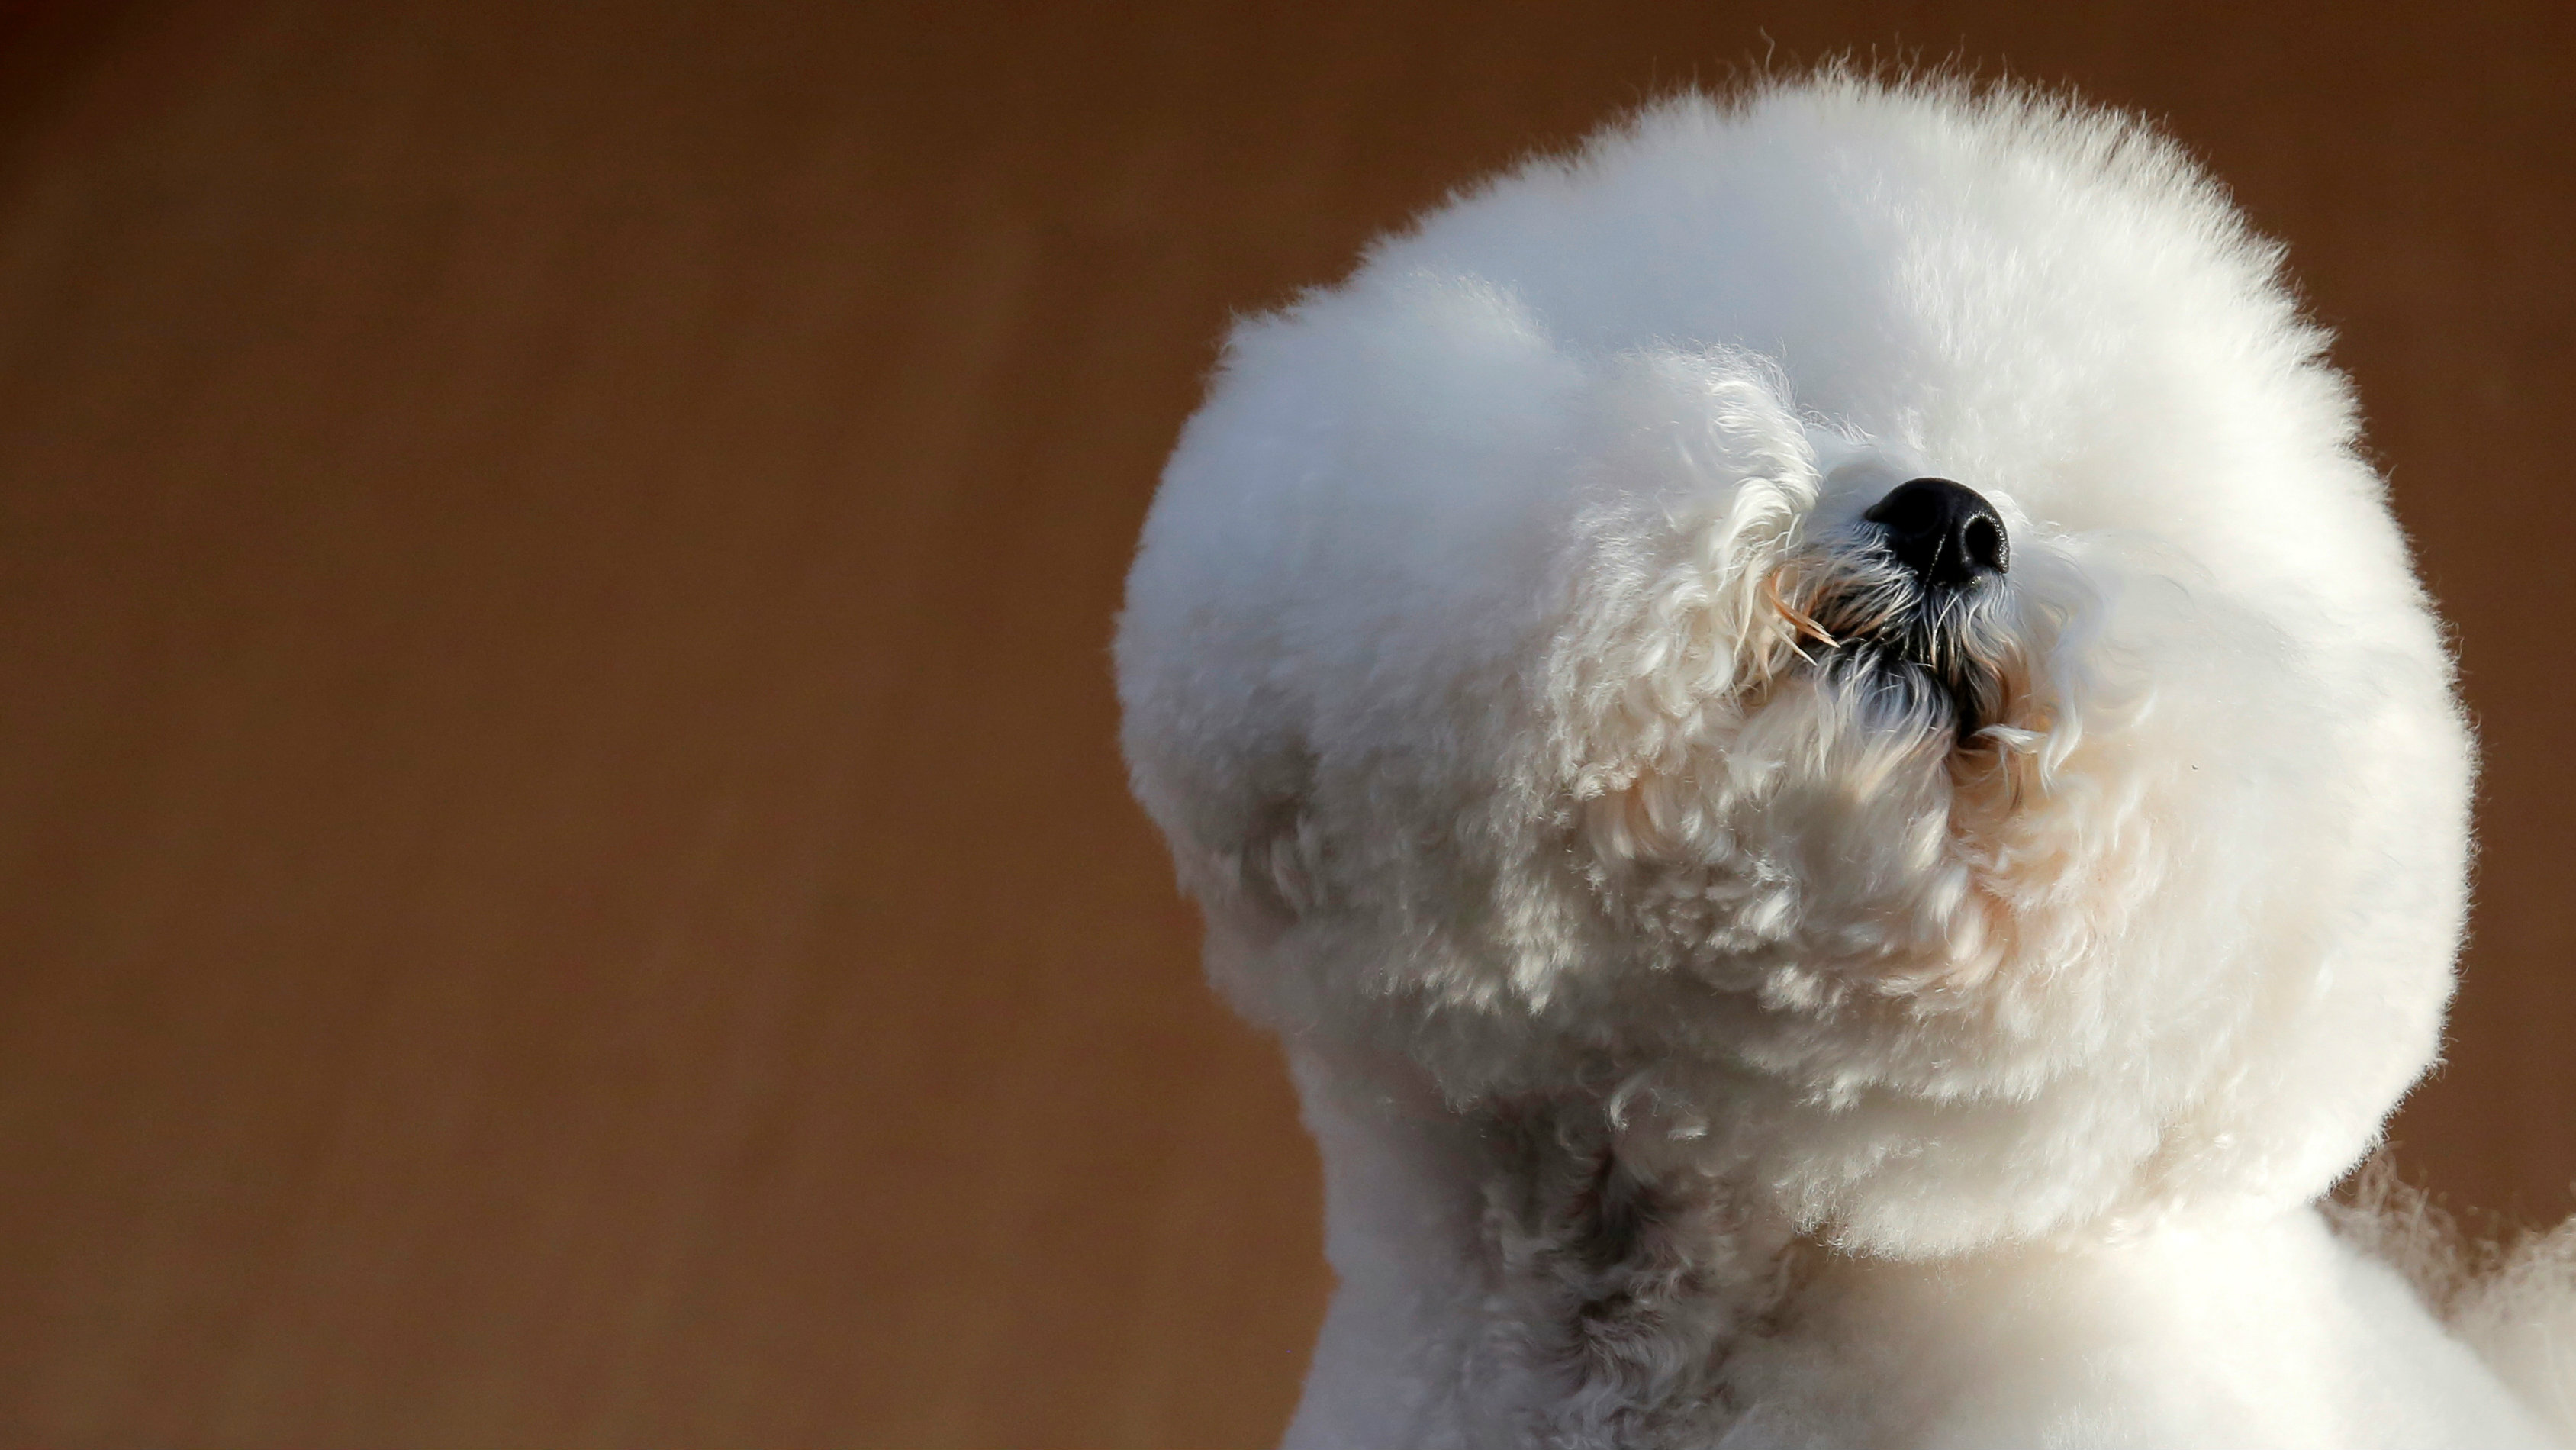 """Flynn, a Bichon Frise, appears at the One World Observatory a day after winning the """"Best in Show"""" at the Westminster Kennel Club Dog Show in Manhattan, New York, U.S., February 14, 2018."""